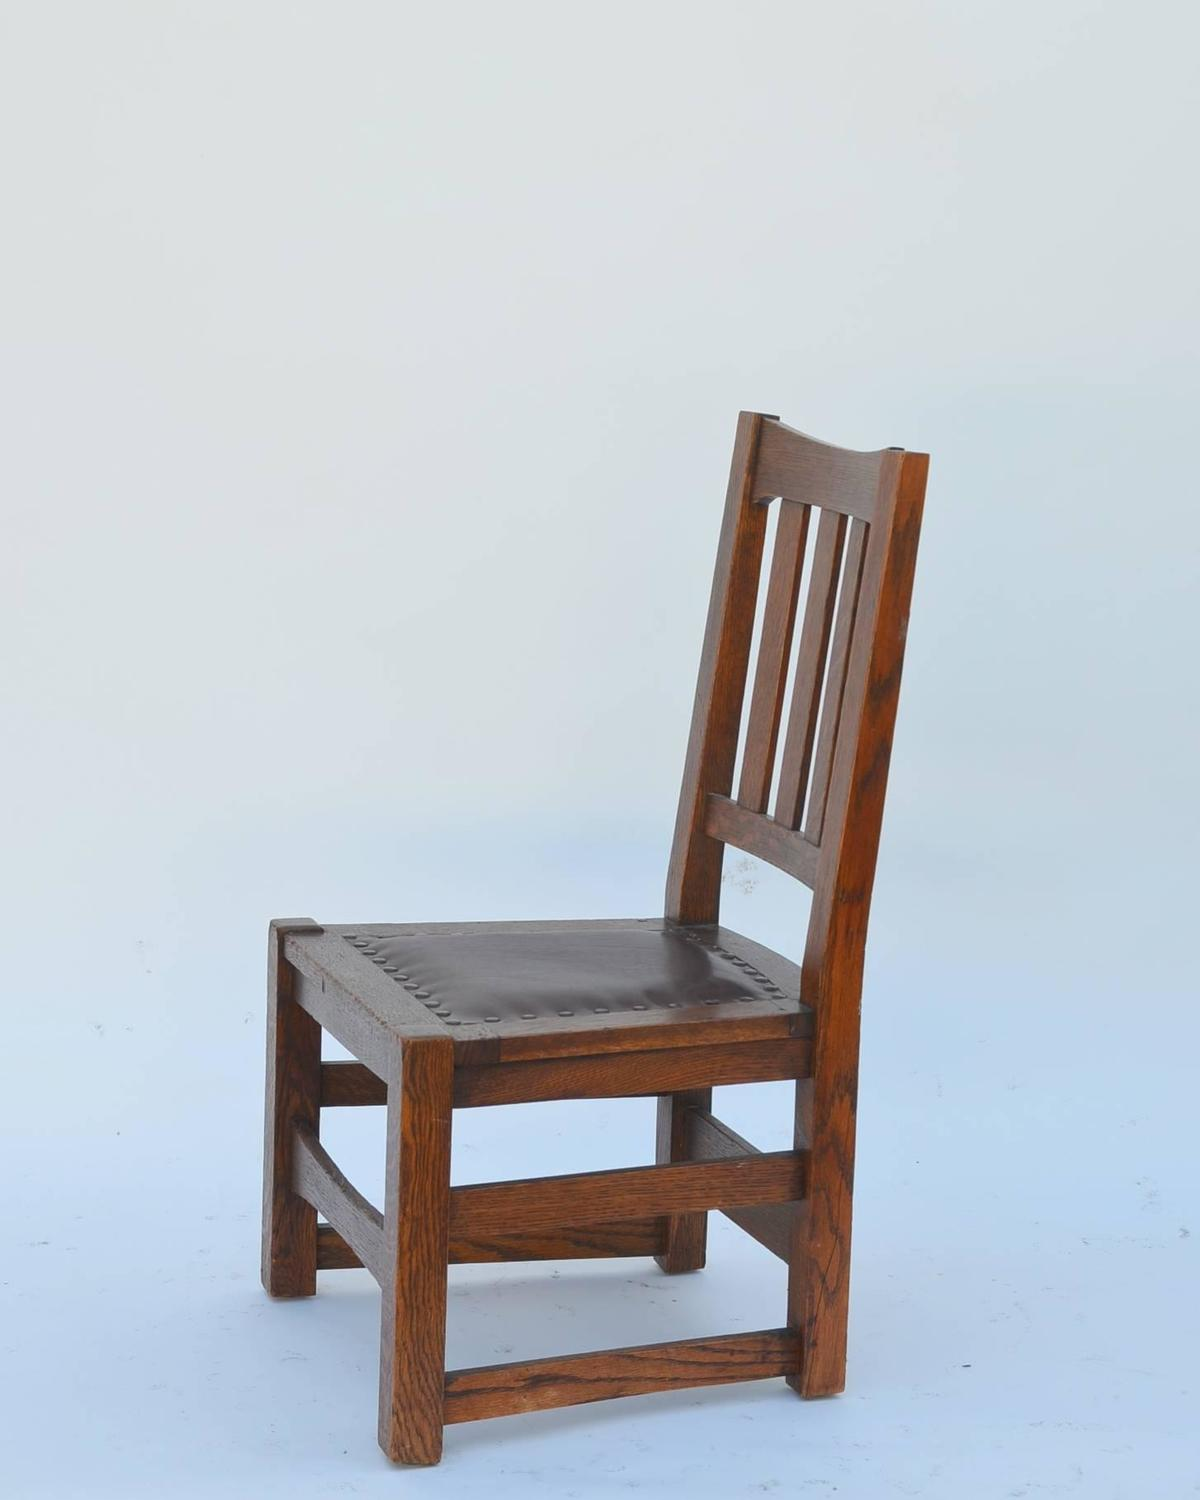 Mission Style Chairs Original Mission Style Arts And Crafts Oak Chair By